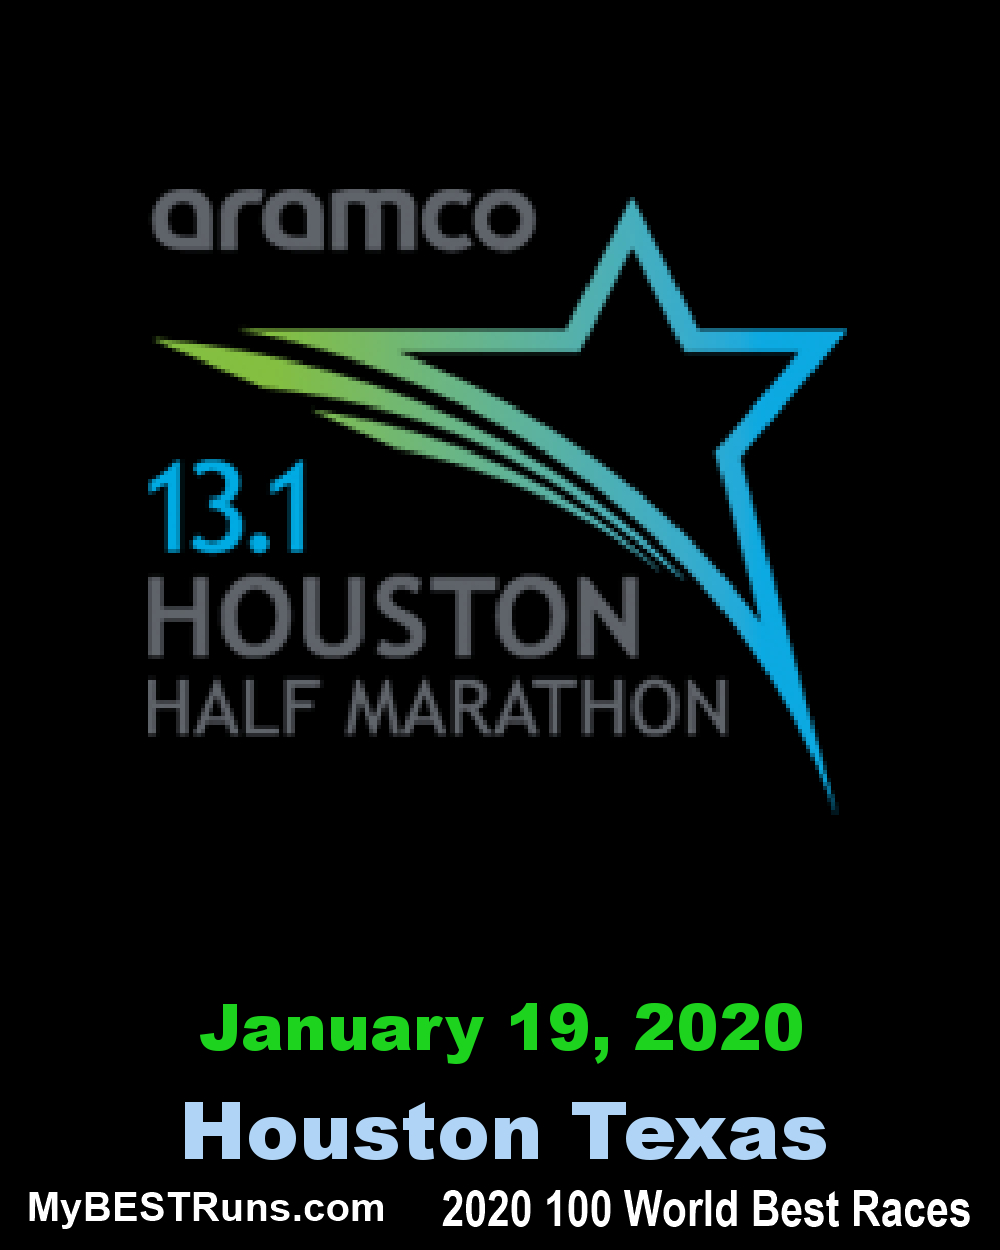 Aramco Houston Half Marathon - Houston, Texas - 1/19/2020 inside 2020 Aramco Calendar